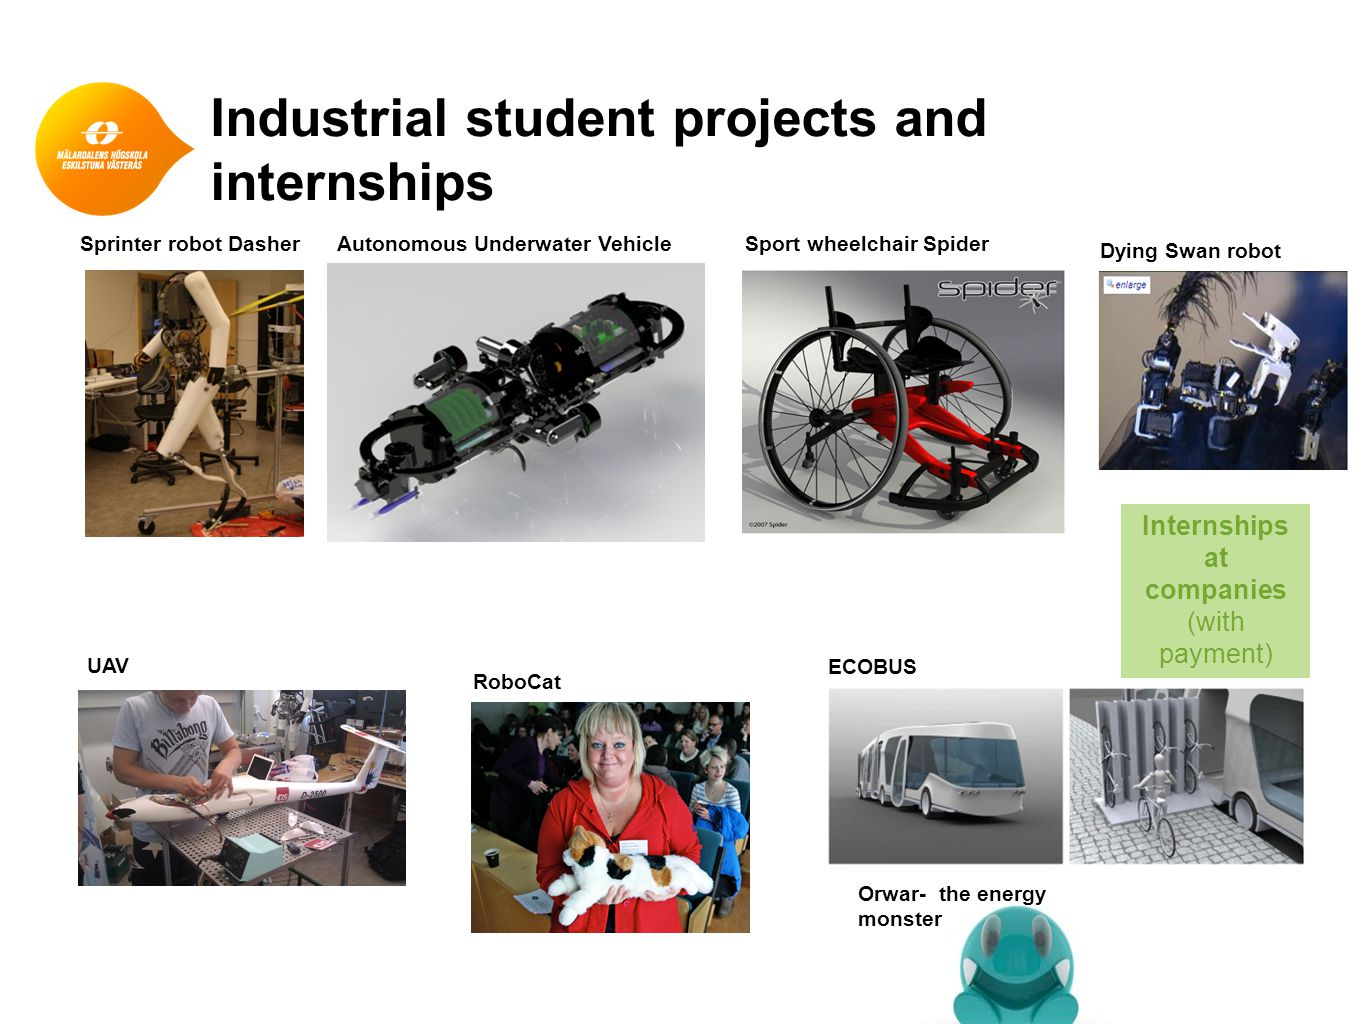 Joint industrial labs (at MDH) ● Industrial Research and Innovation Lab (Ericsson) ● Robotic Lab (several companies involved)